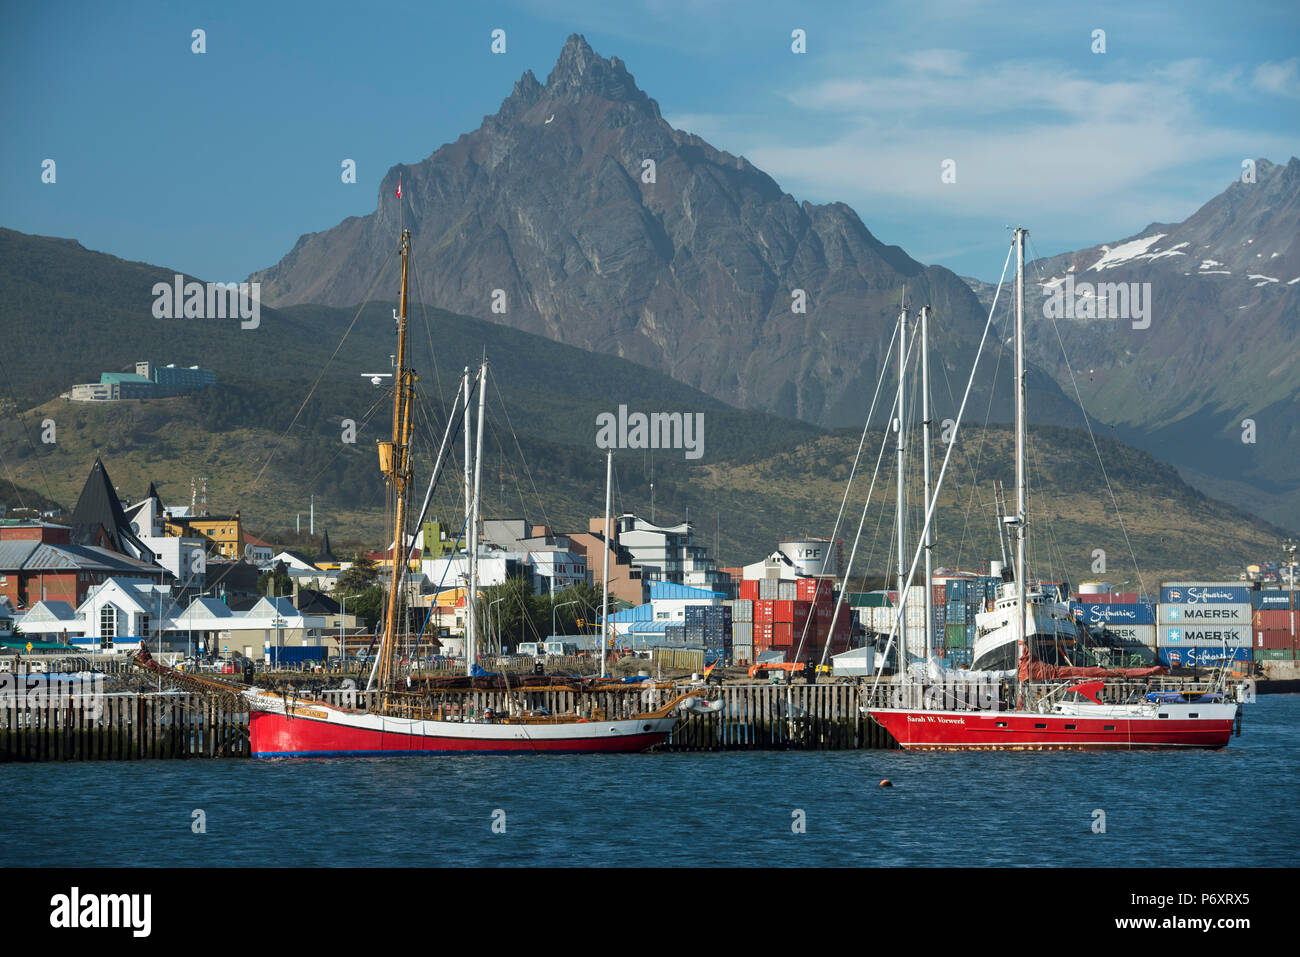 South America, Argentina, Tierra del Fuego,  Harbour at Ushuaia - Stock Image